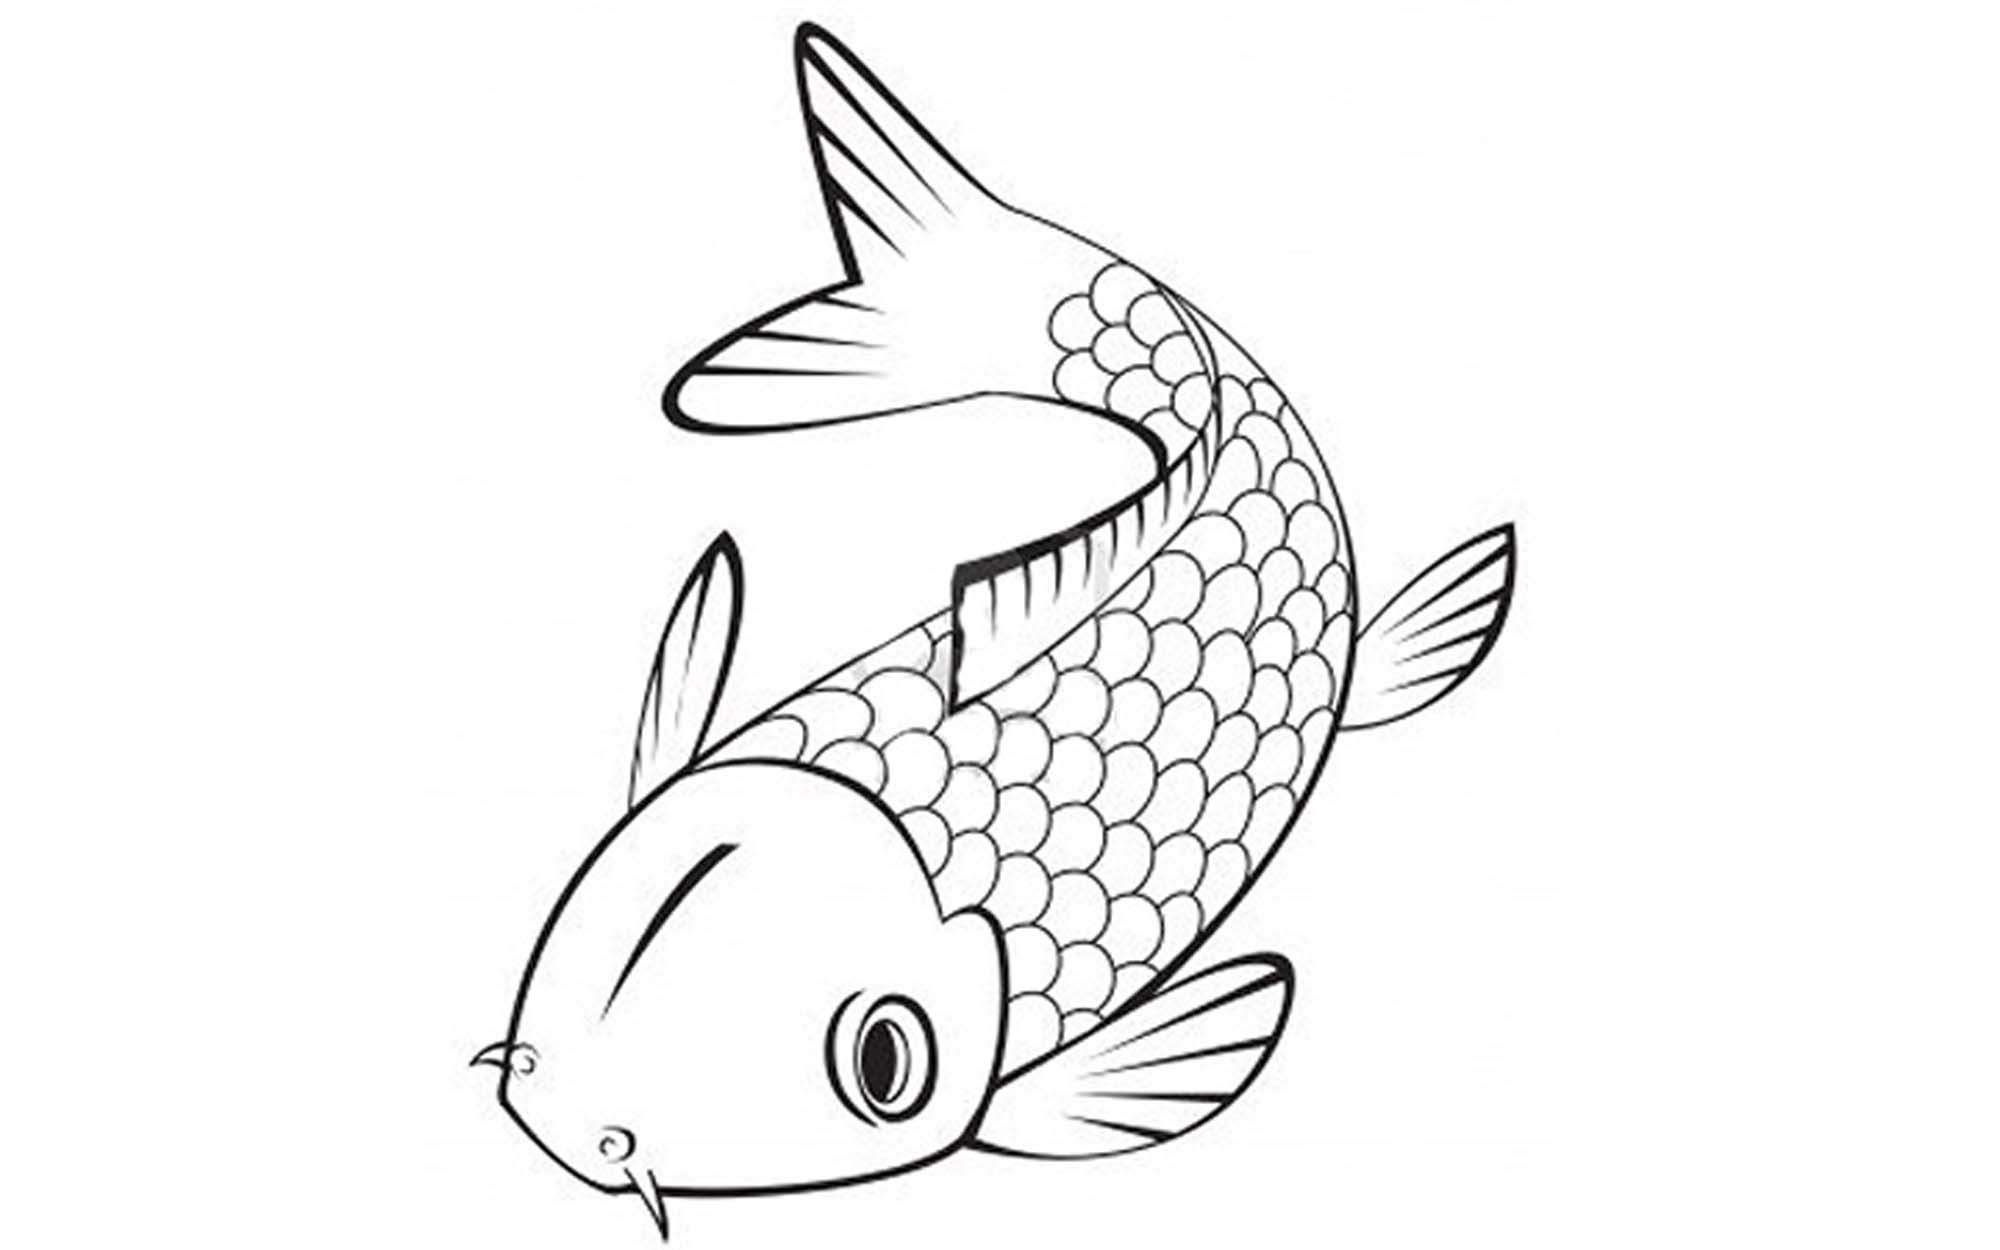 pictures of fish coloring pages simple fish coloring pages download and print for free fish coloring of pictures pages